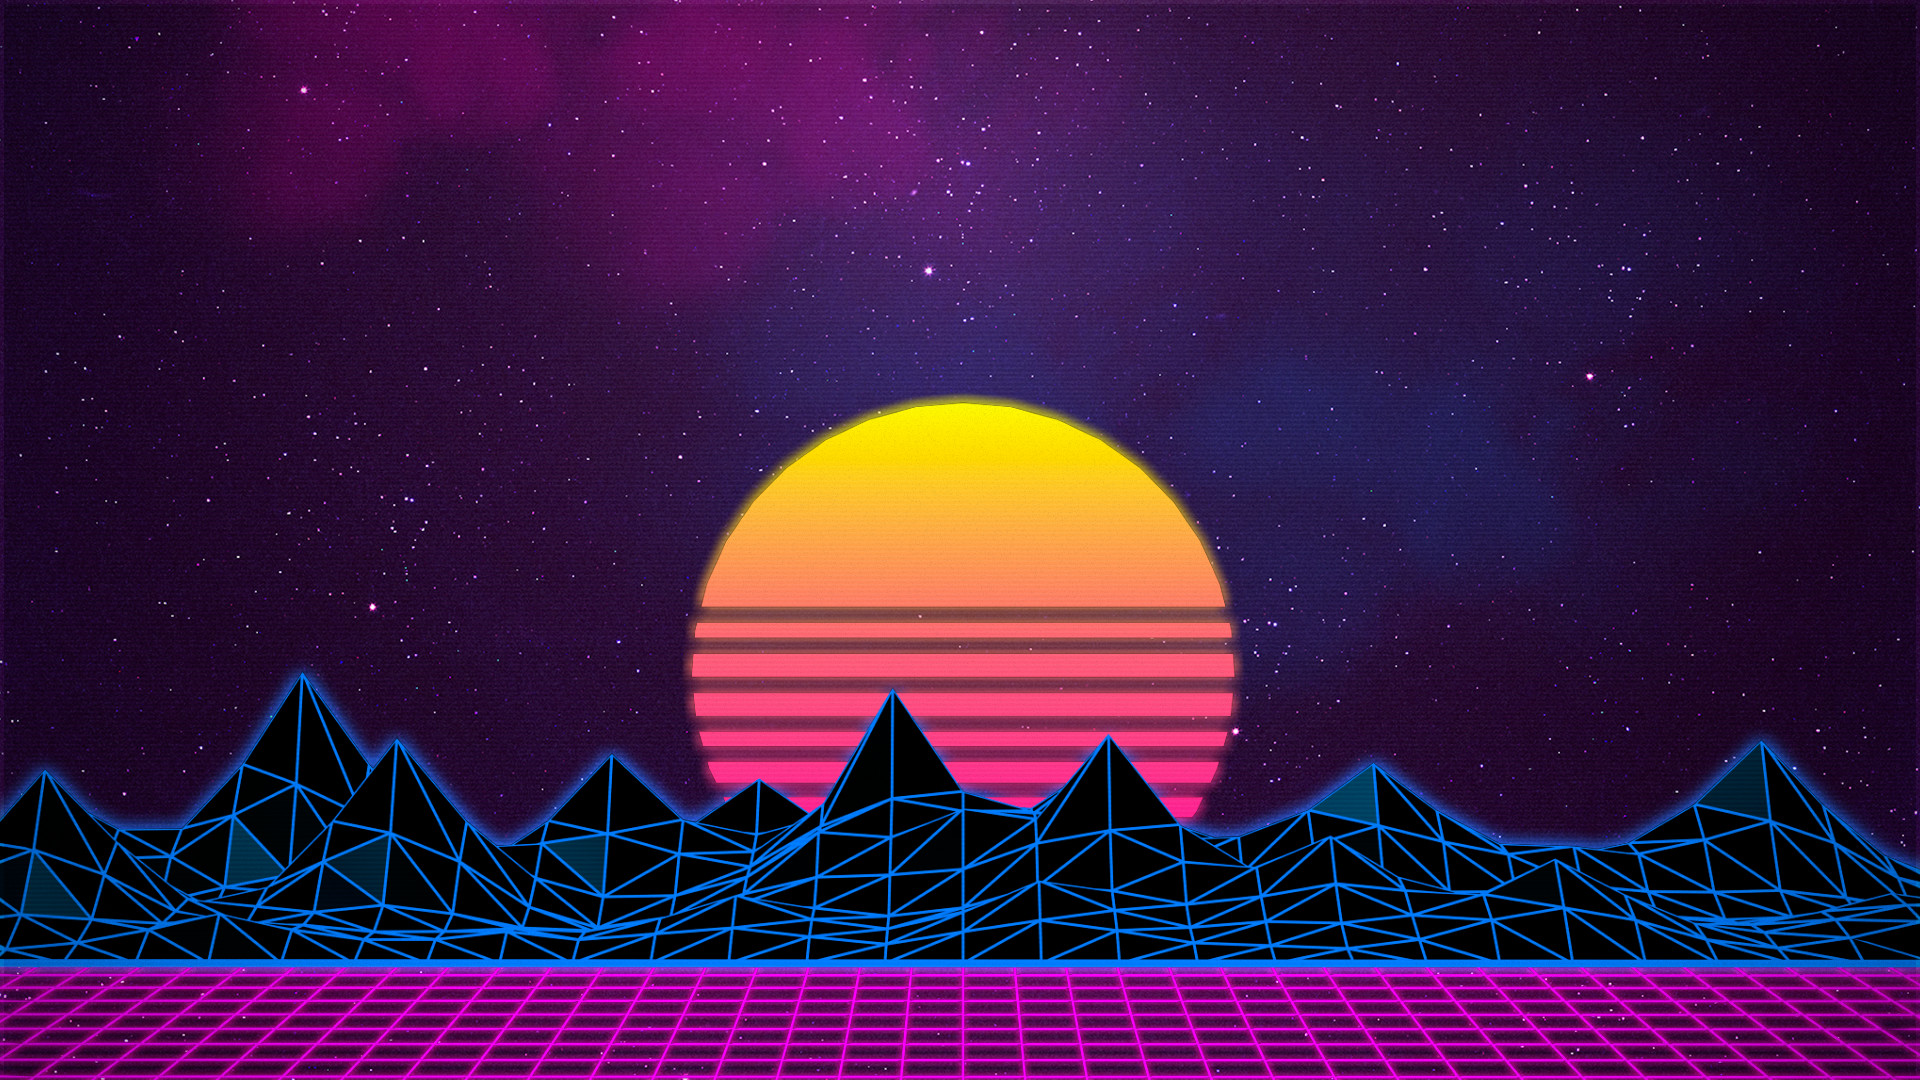 Res: 1920x1080, Download Wallpaper · retro